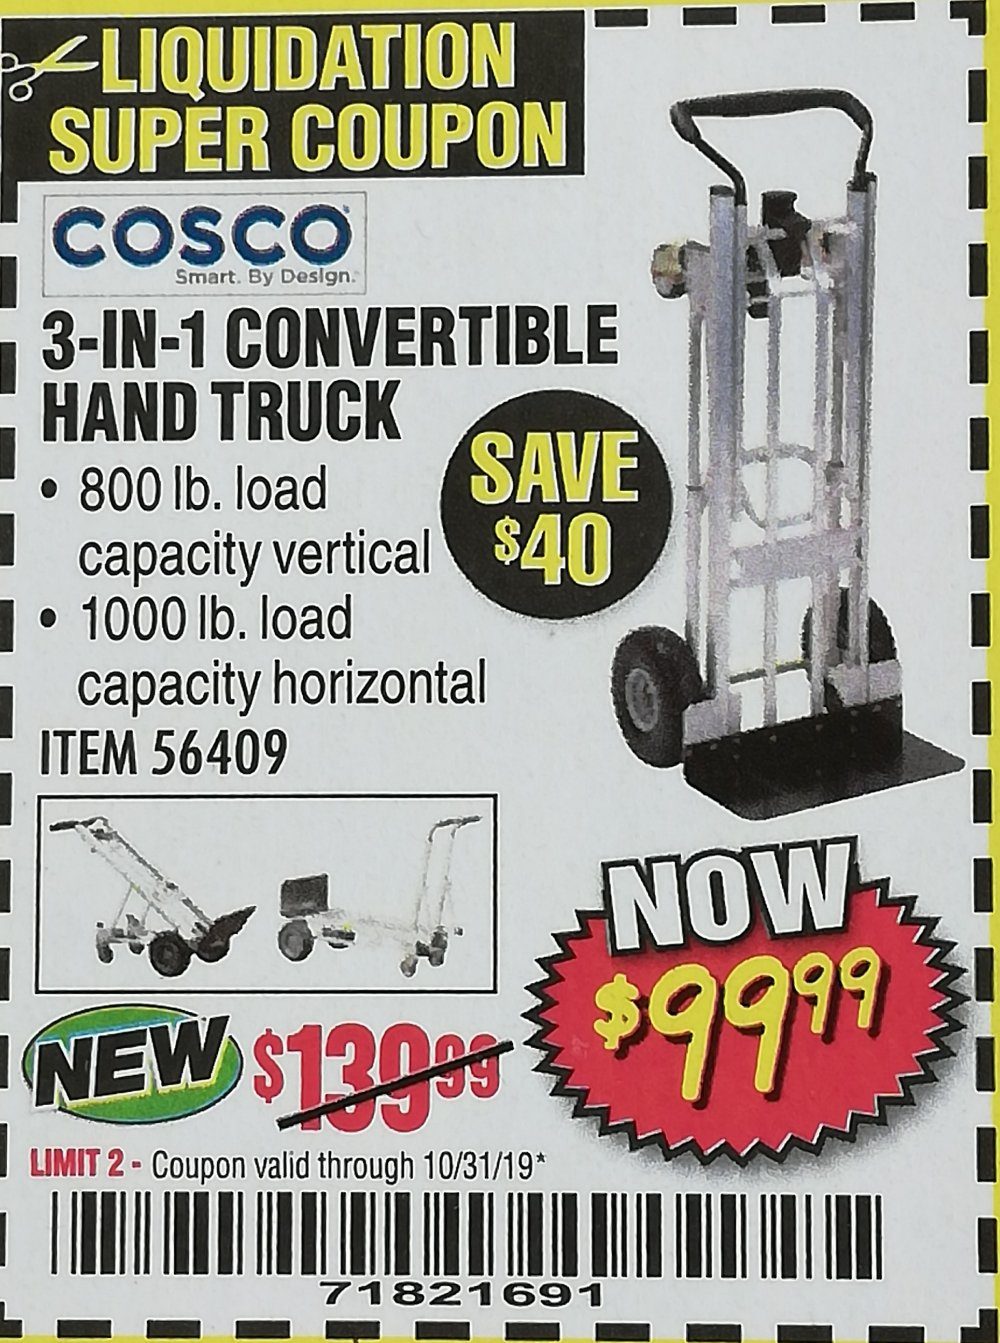 Harbor Freight Coupon, HF Coupons - 3-IN-1 CONVERTIBLE HAND TRUCK